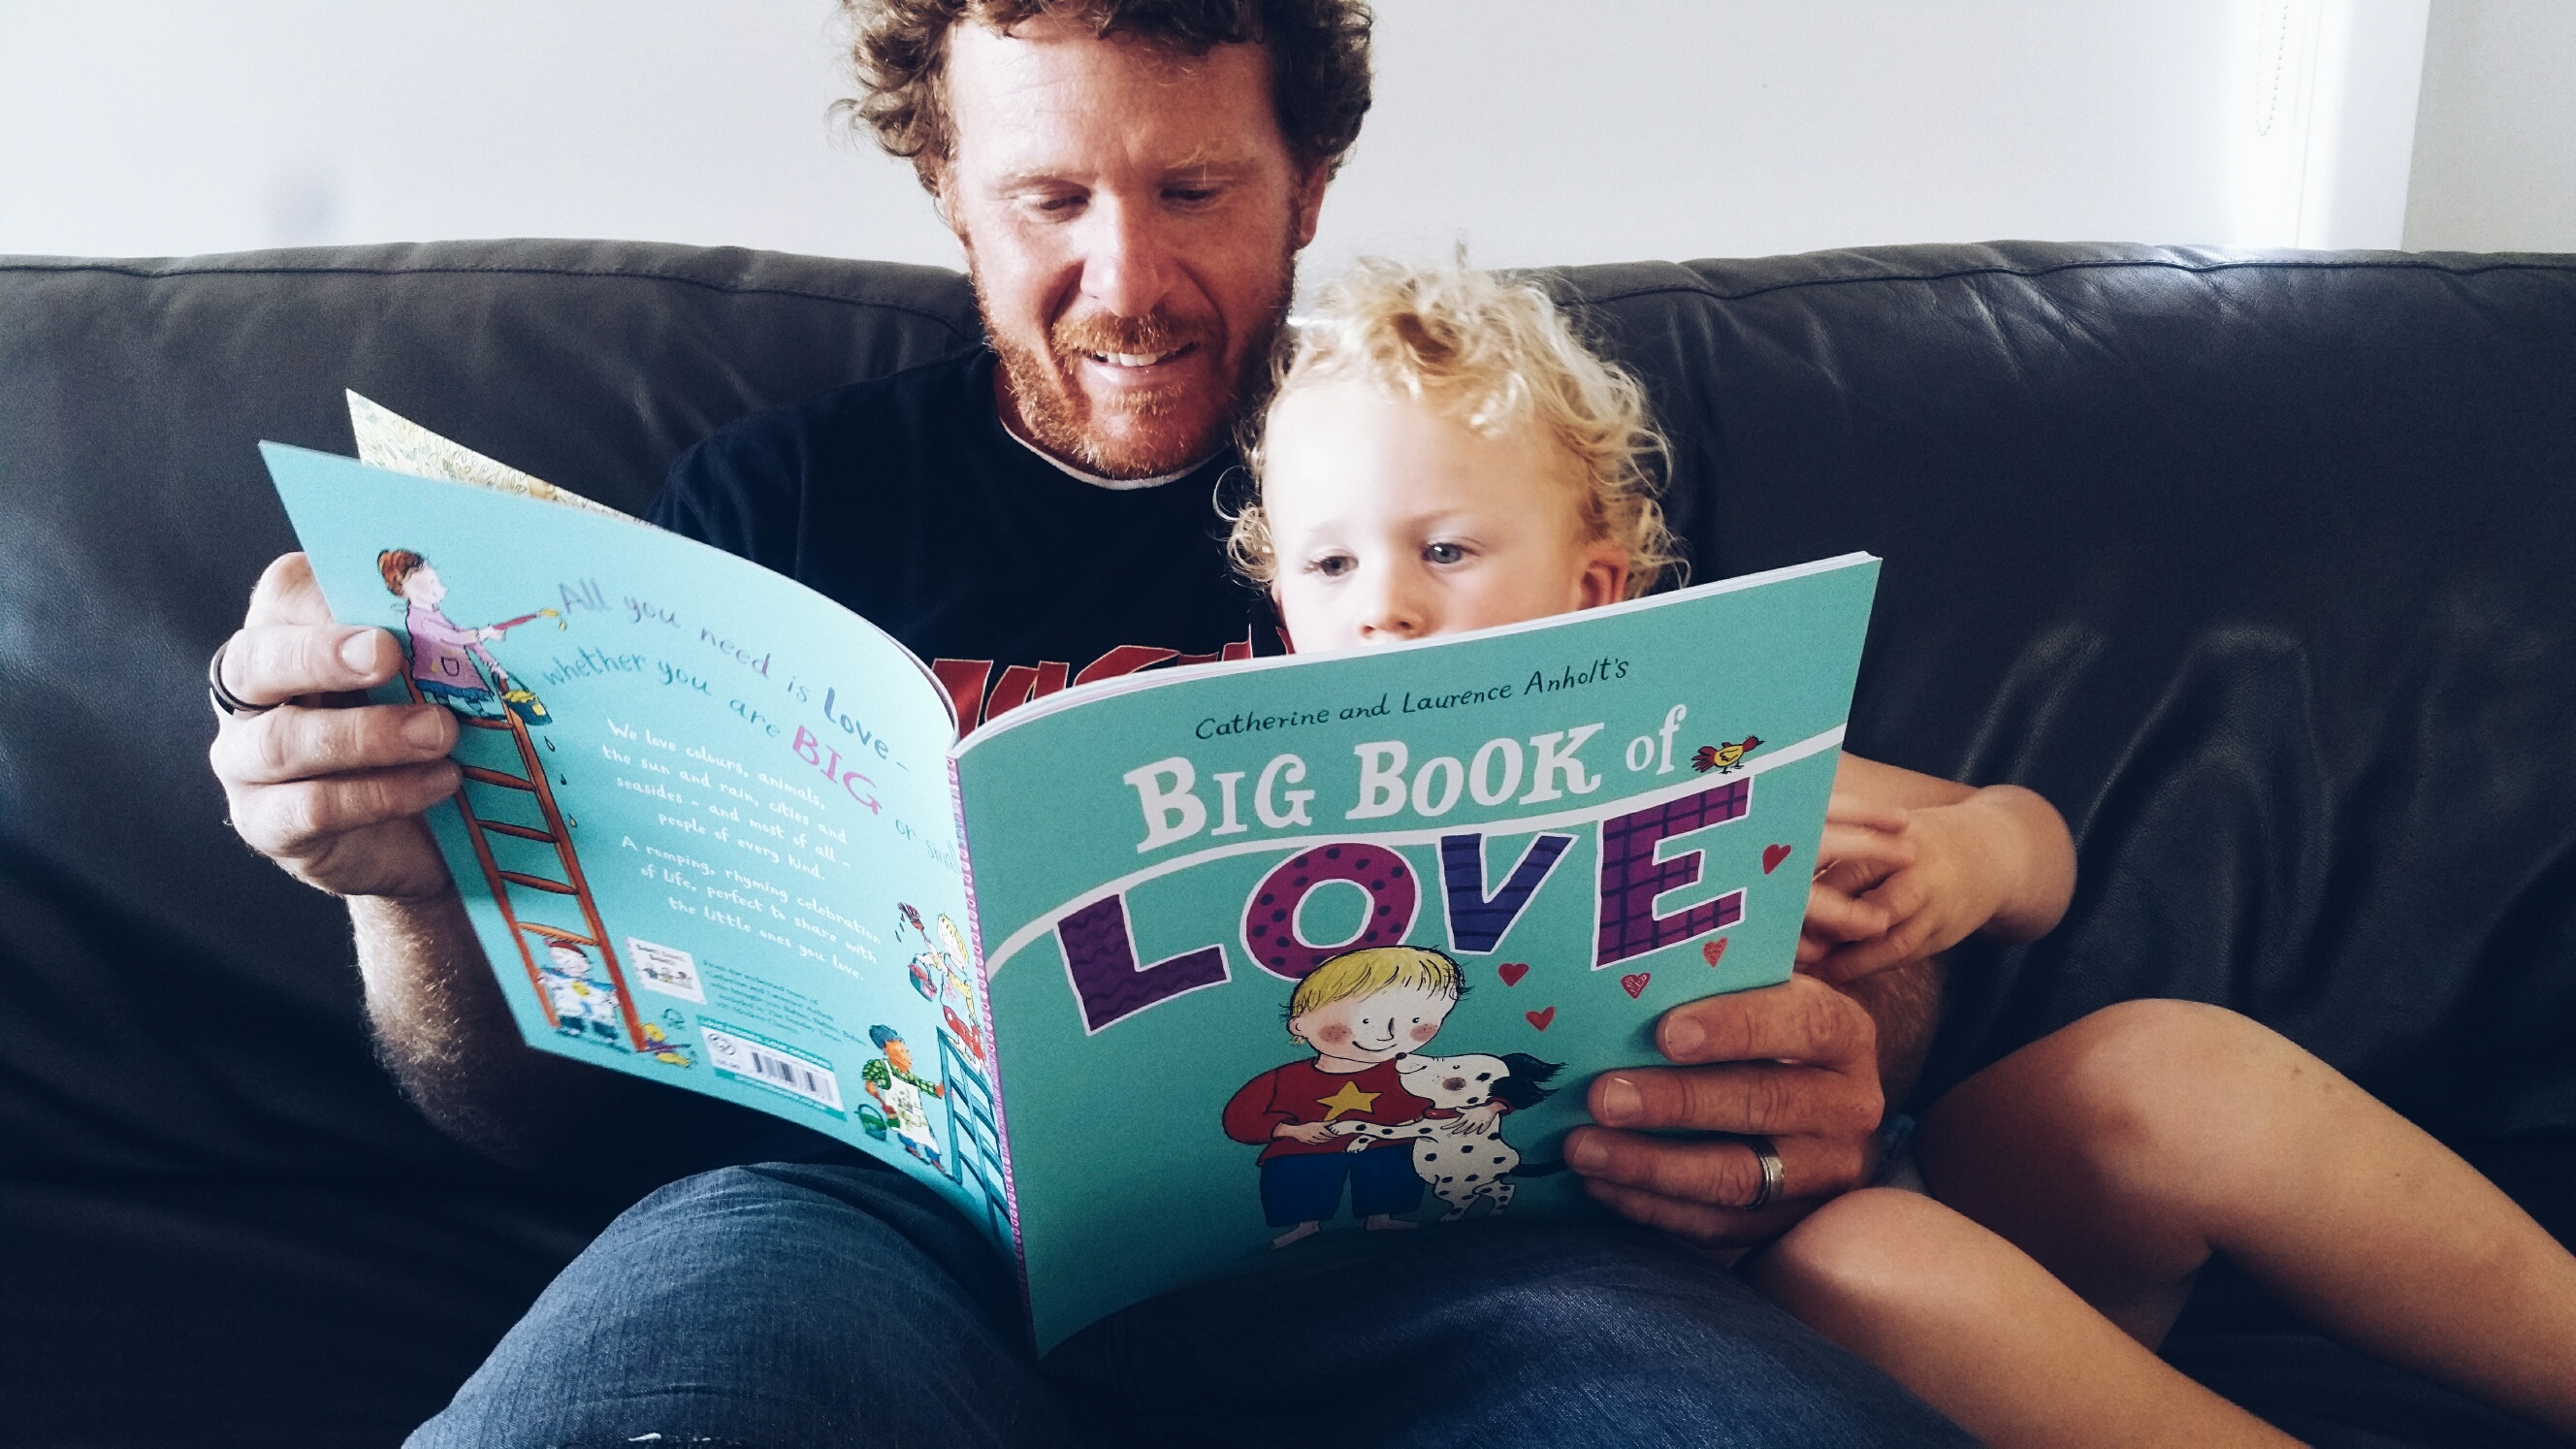 New Zealand's Top Mummy Blogger Book review